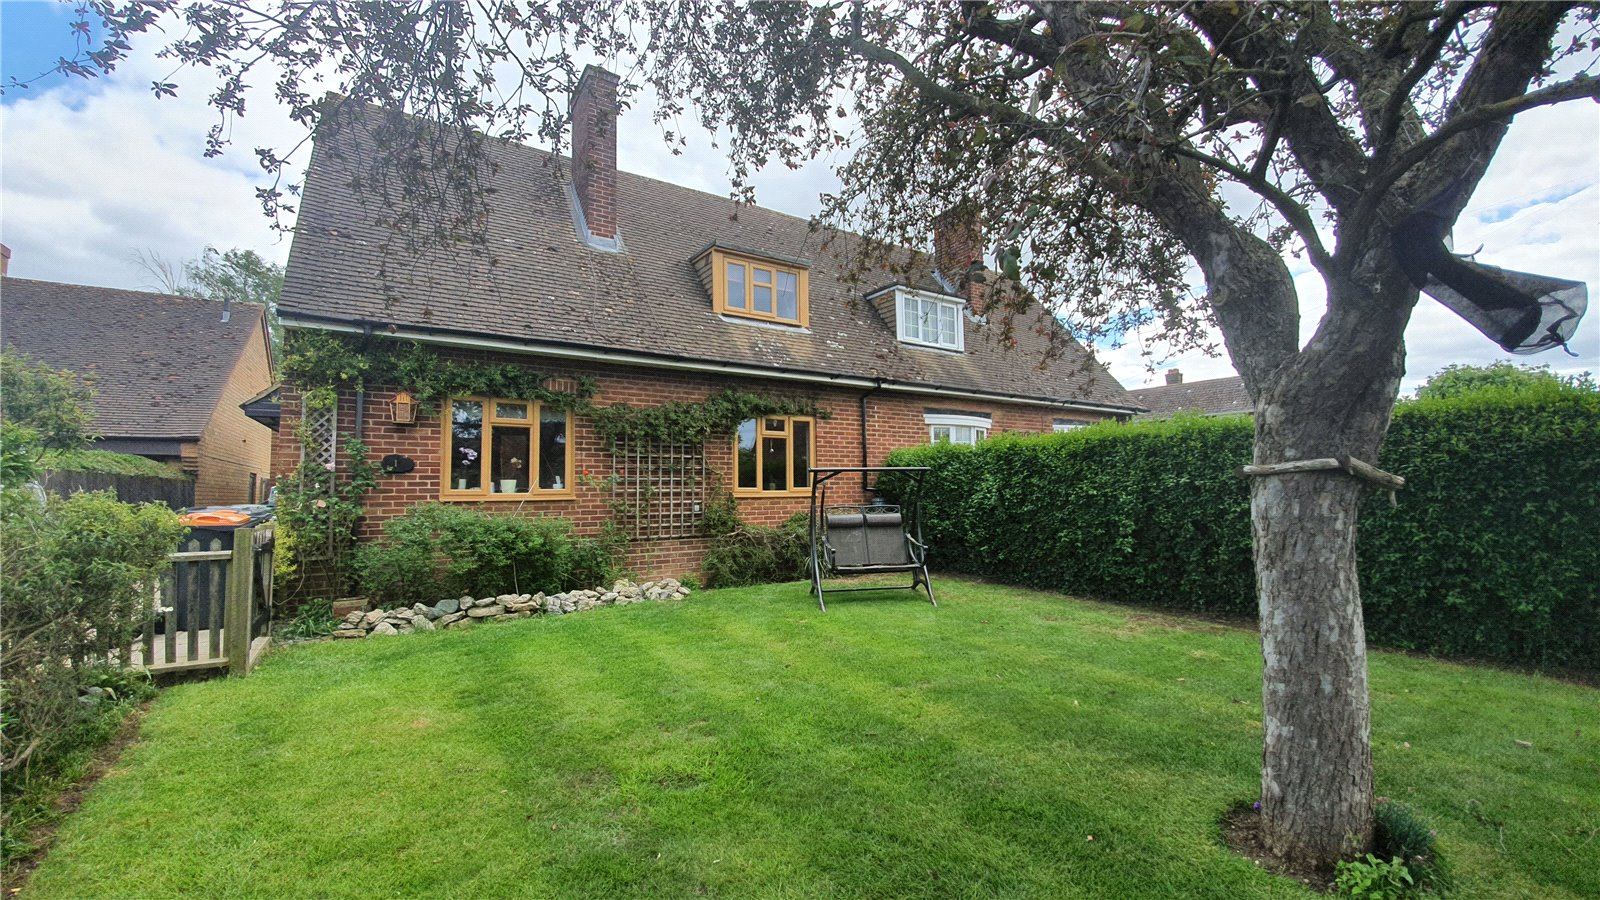 4 bed house for sale in Roxton, Saxon Close, MK44 3EP 0